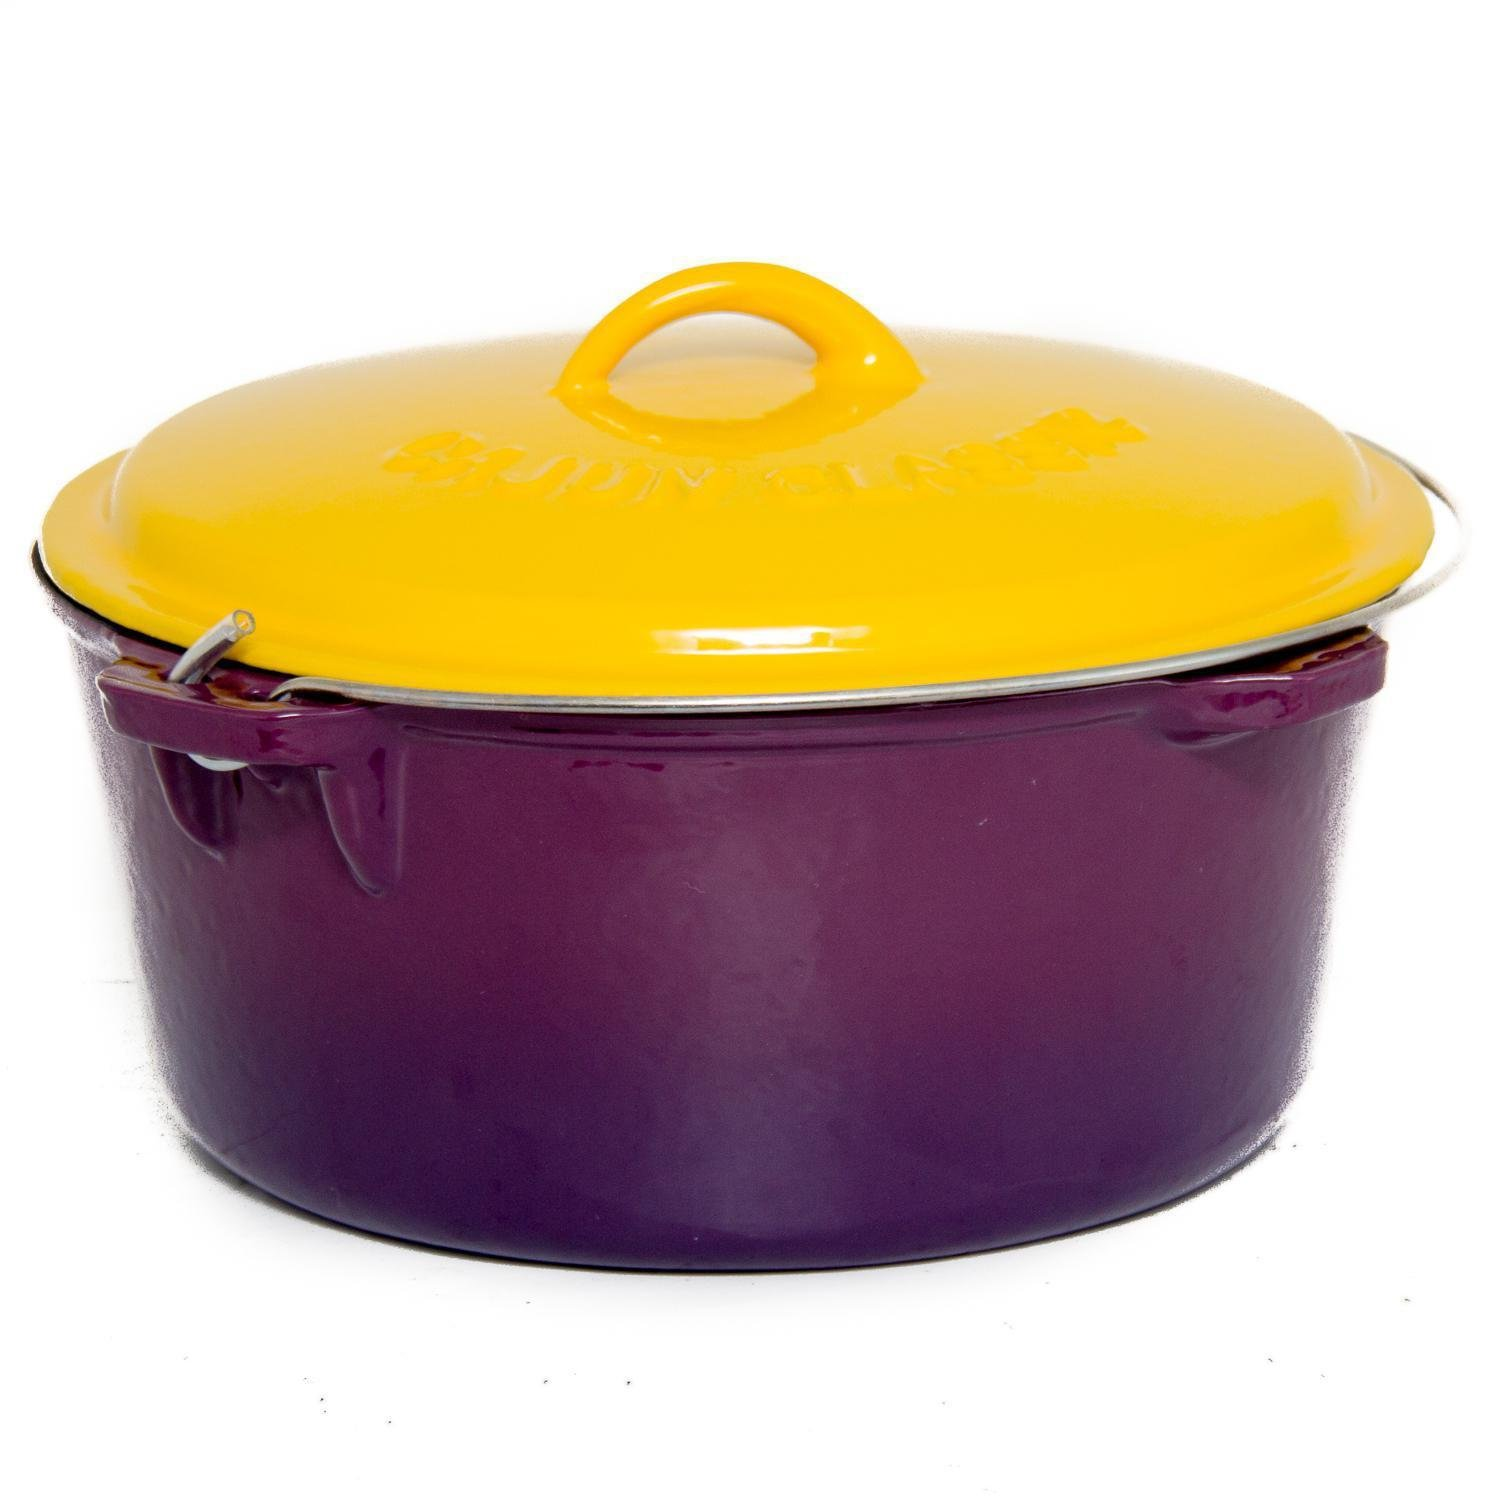 Cajun Classic 16-quart Enamel Cast Iron Dutch Oven - Purple & Gold - Gl10490pg